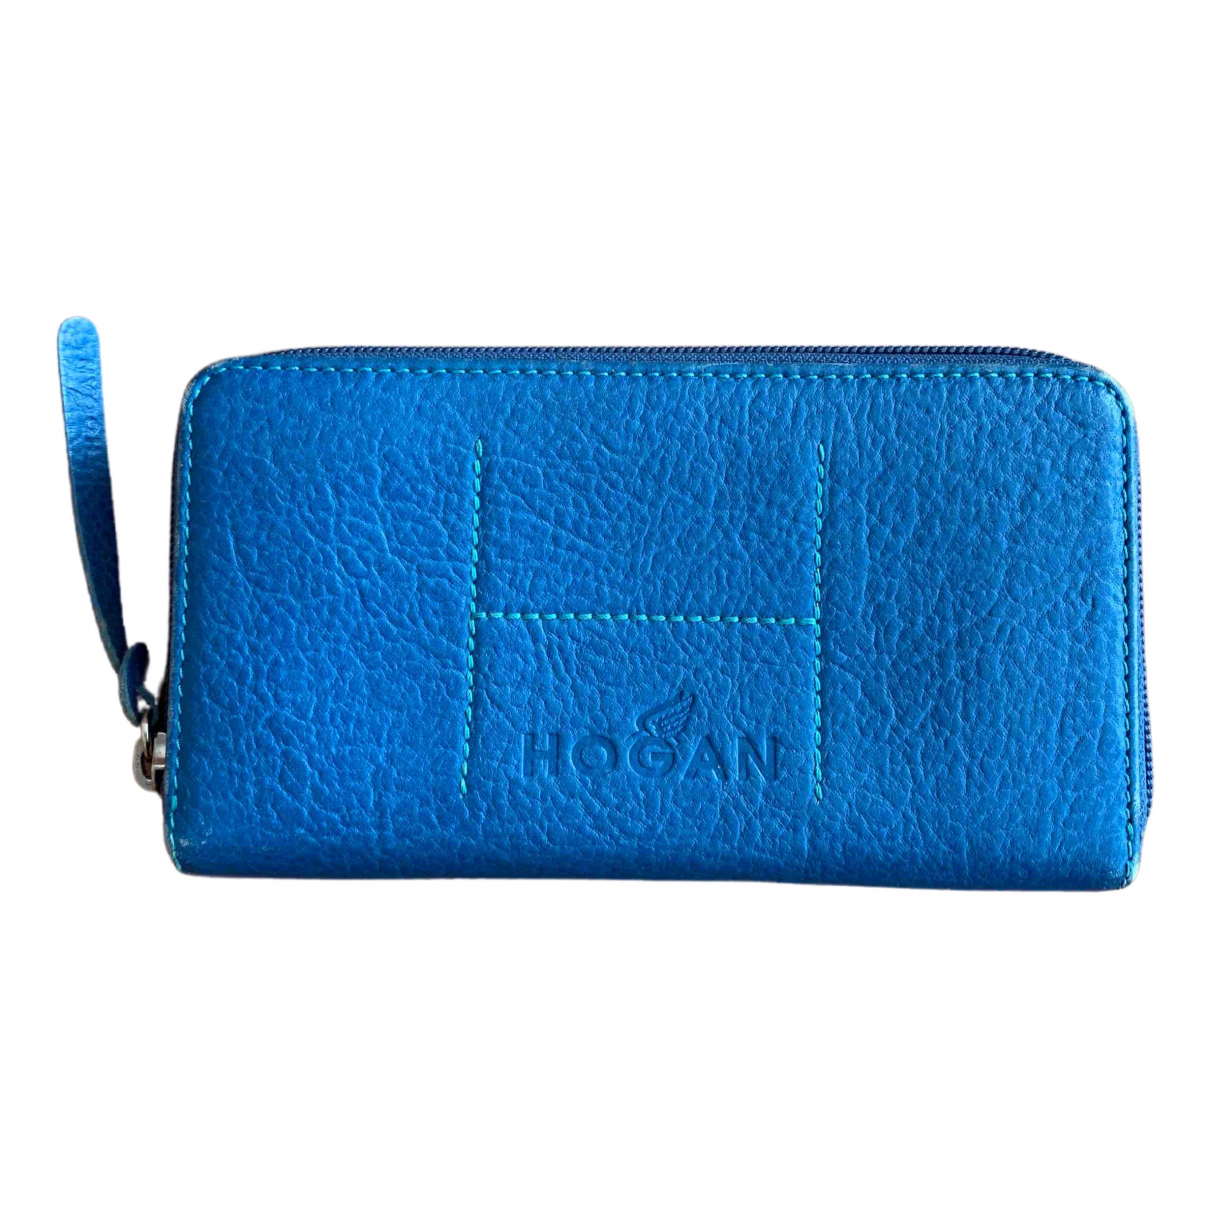 Hogan \N Turquoise Leather wallet for Women \N